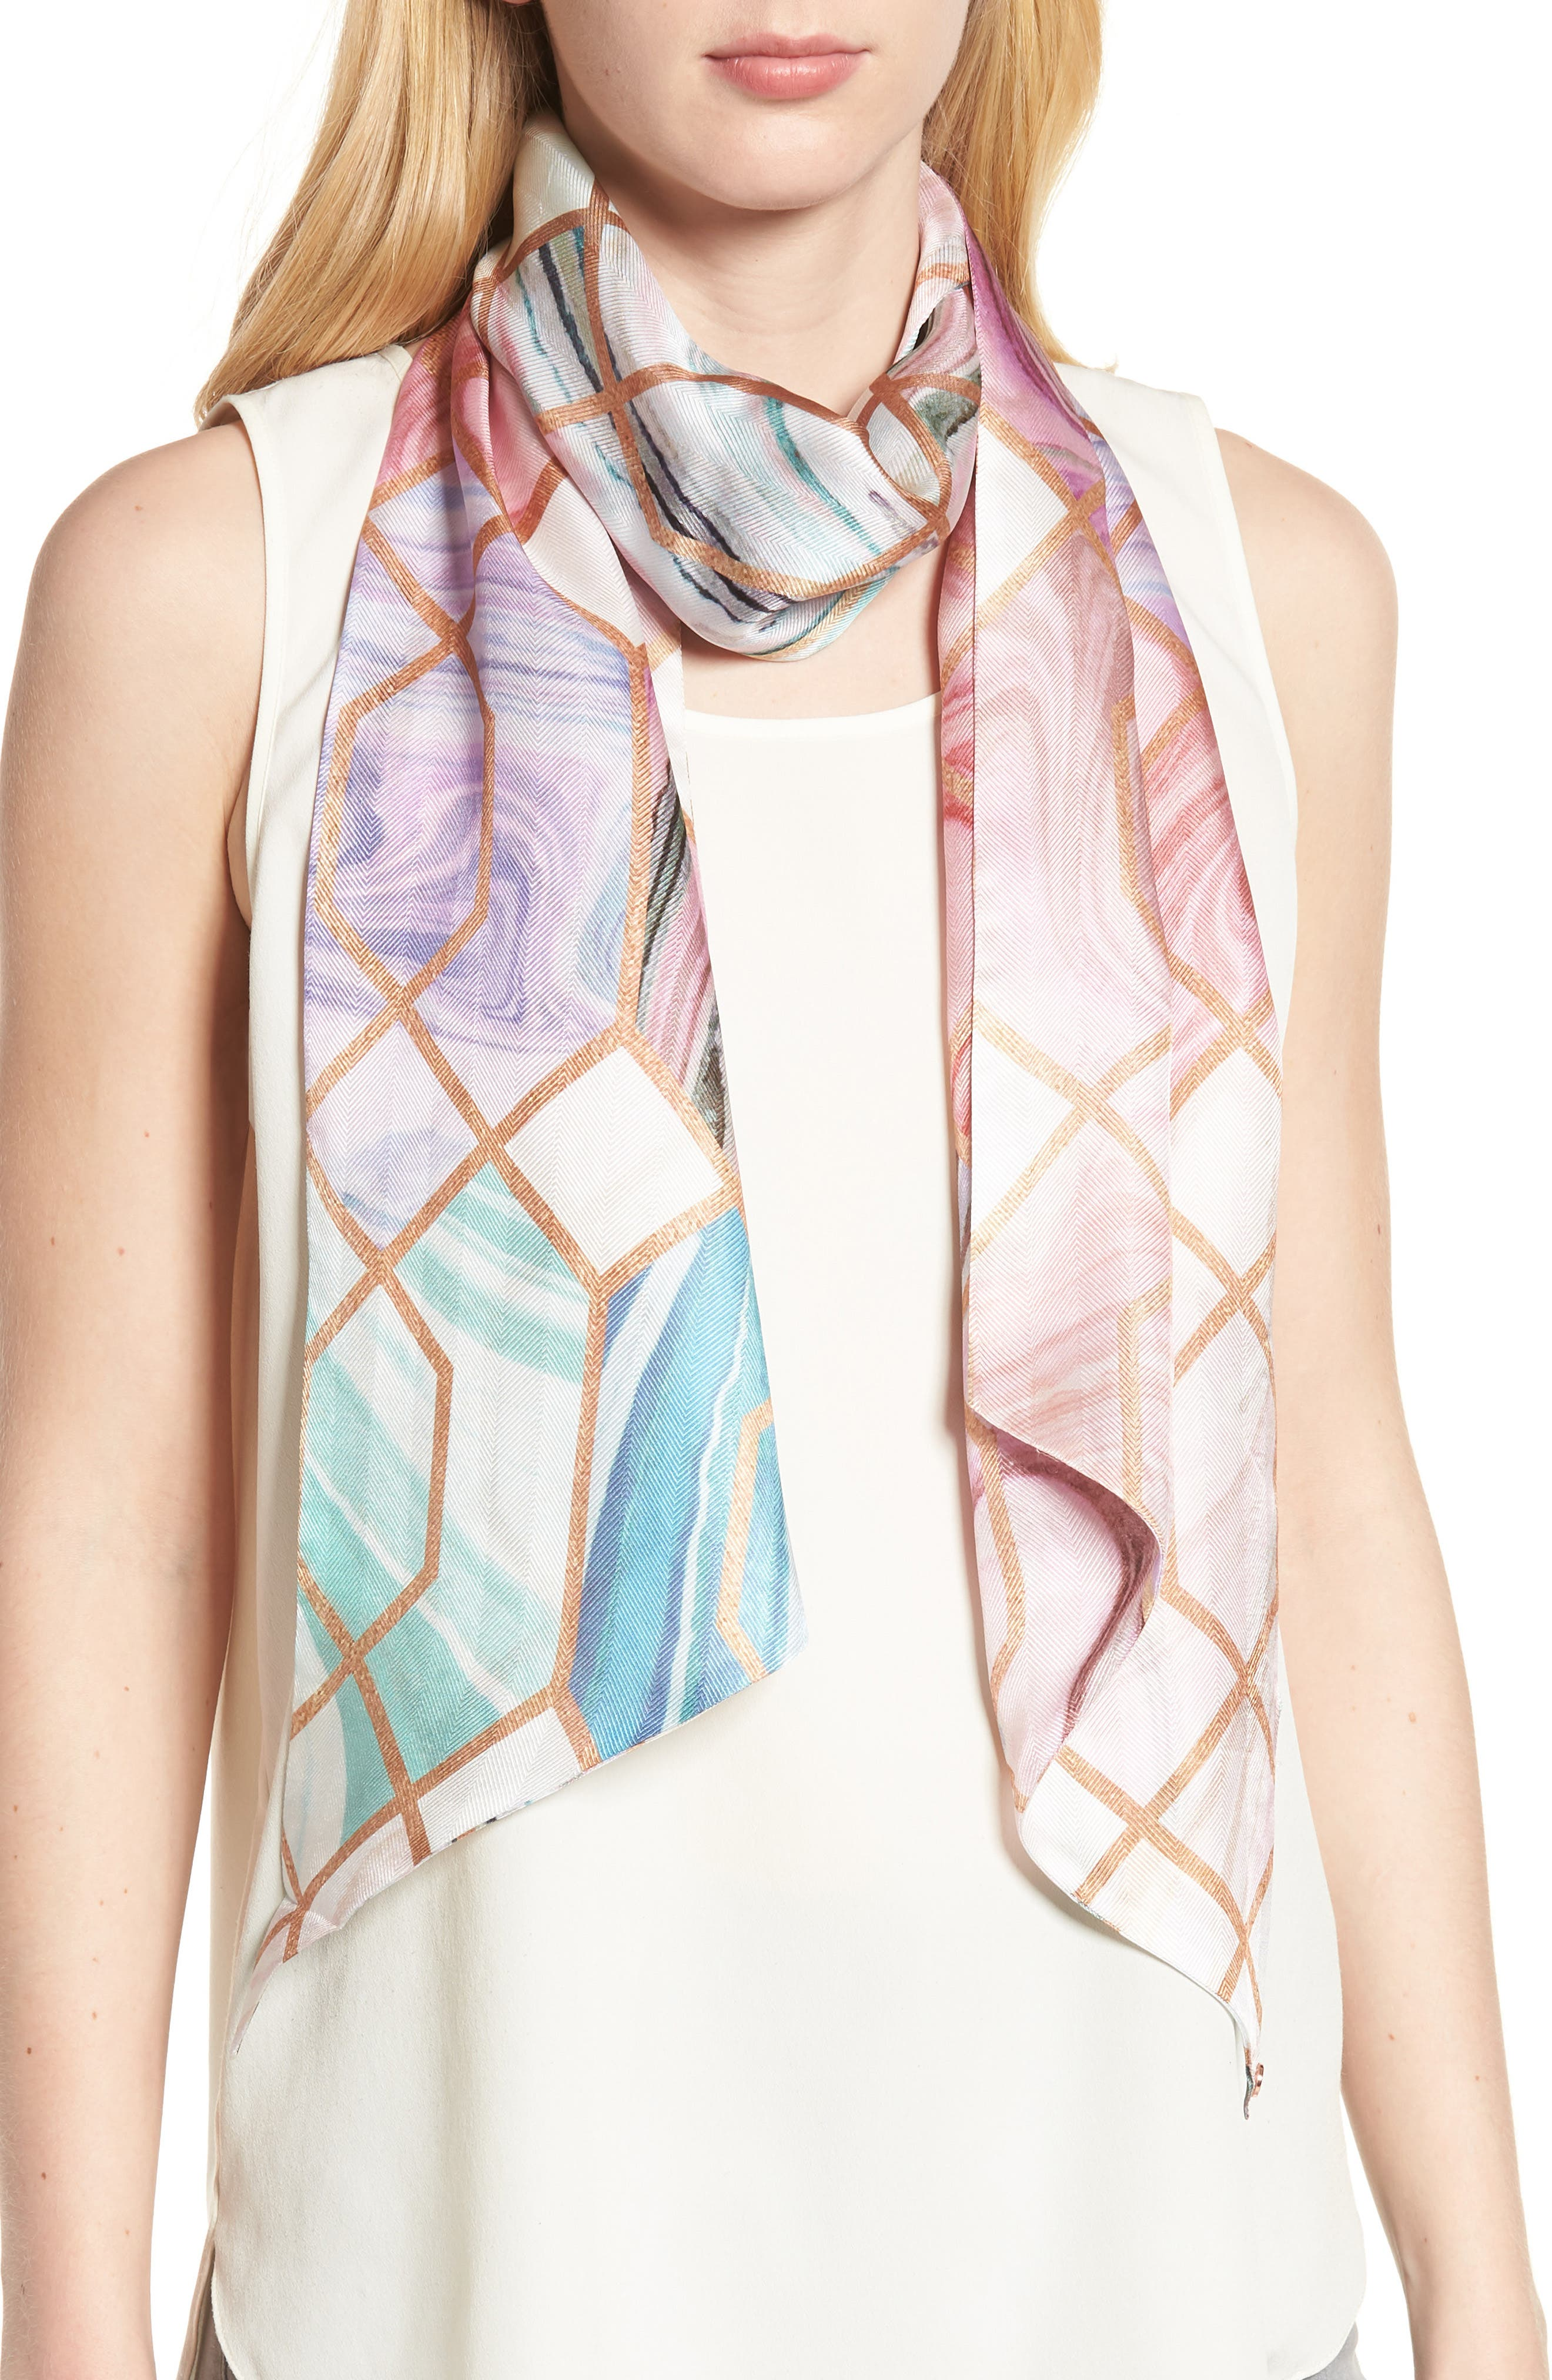 Adeelee - Sea of Clouds Silk Scarf,                         Main,                         color, White